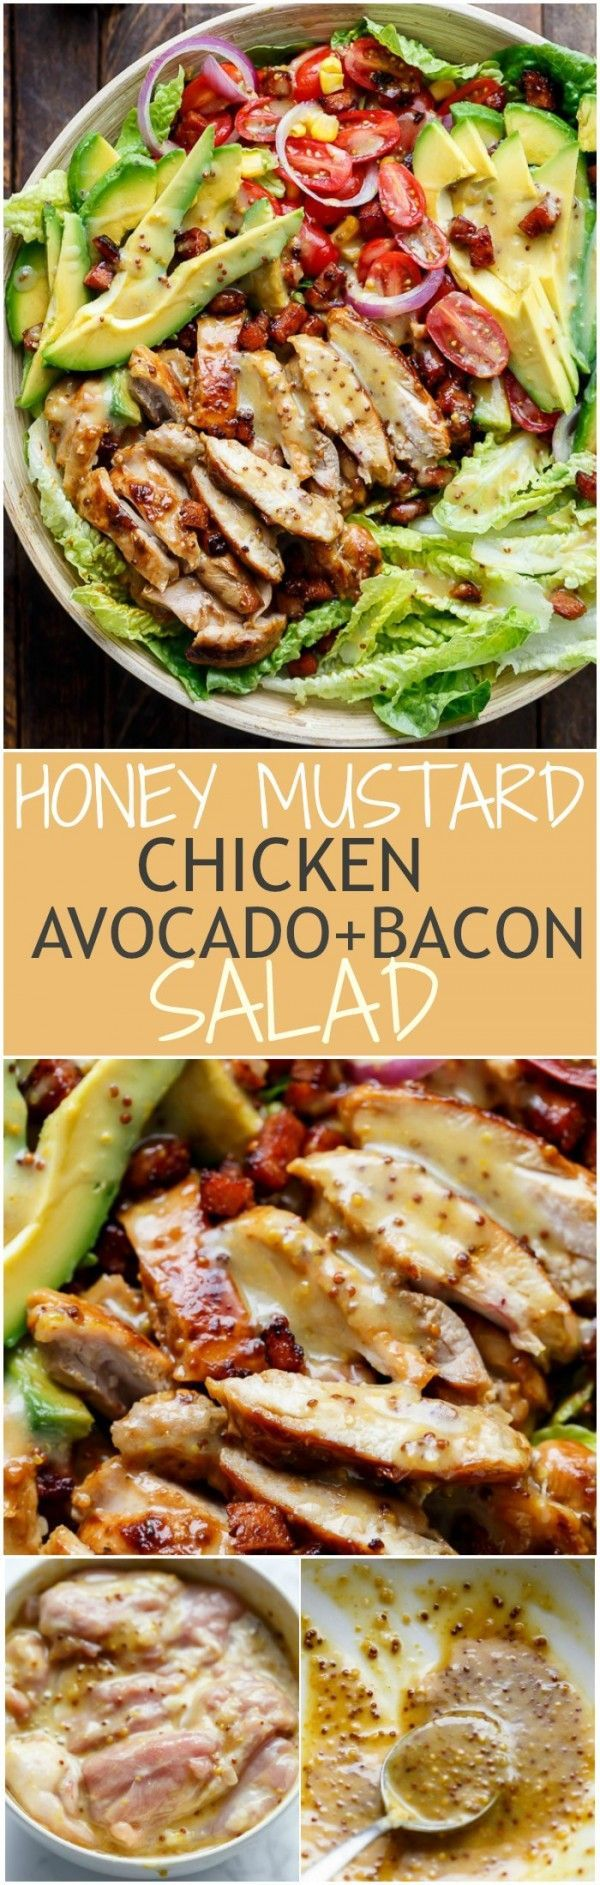 Get the recipe Honey Mustard Chicken Avocado and Bacon Salad @recipes_to_go